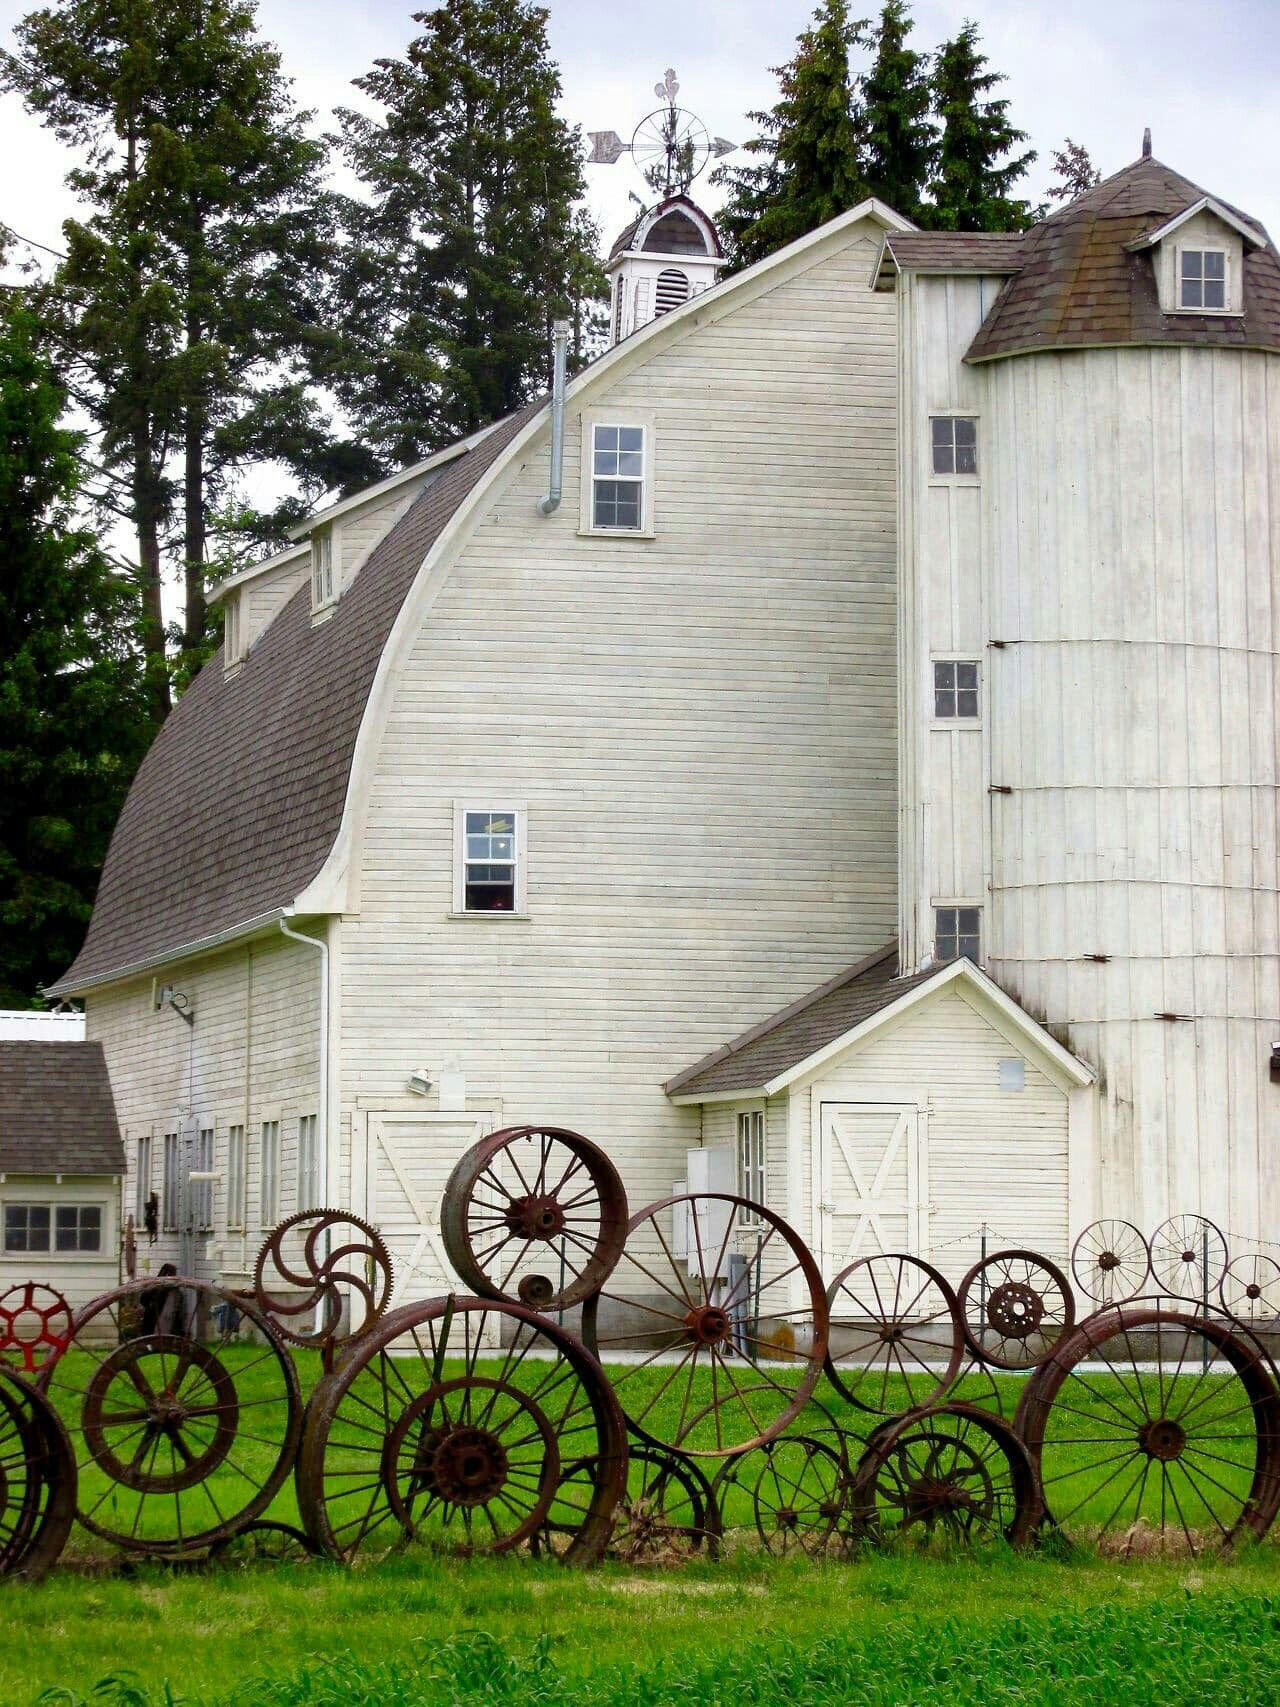 Pin by Kelly Landes on WeldingMetal Art Country barns